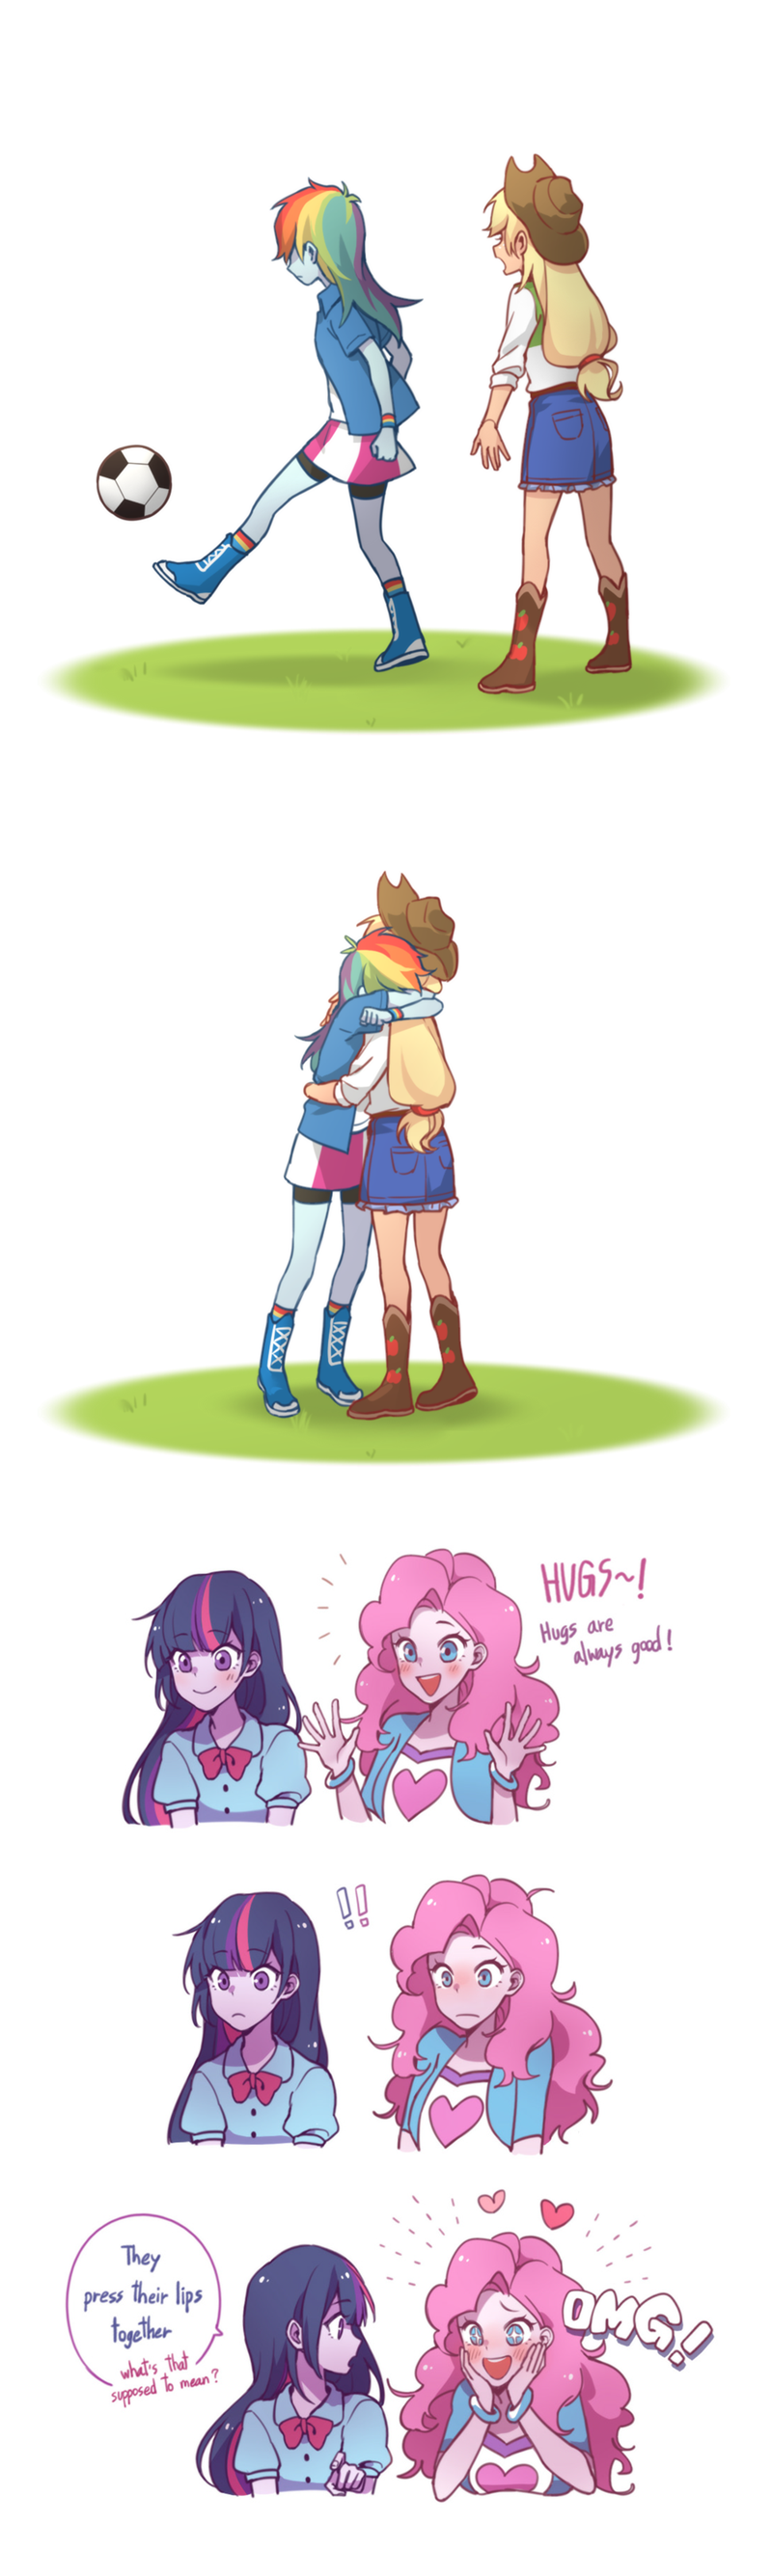 shipping applejack equestria girls twilight sparkle pinkie pie comic dcon rainbow dash - 9287964416